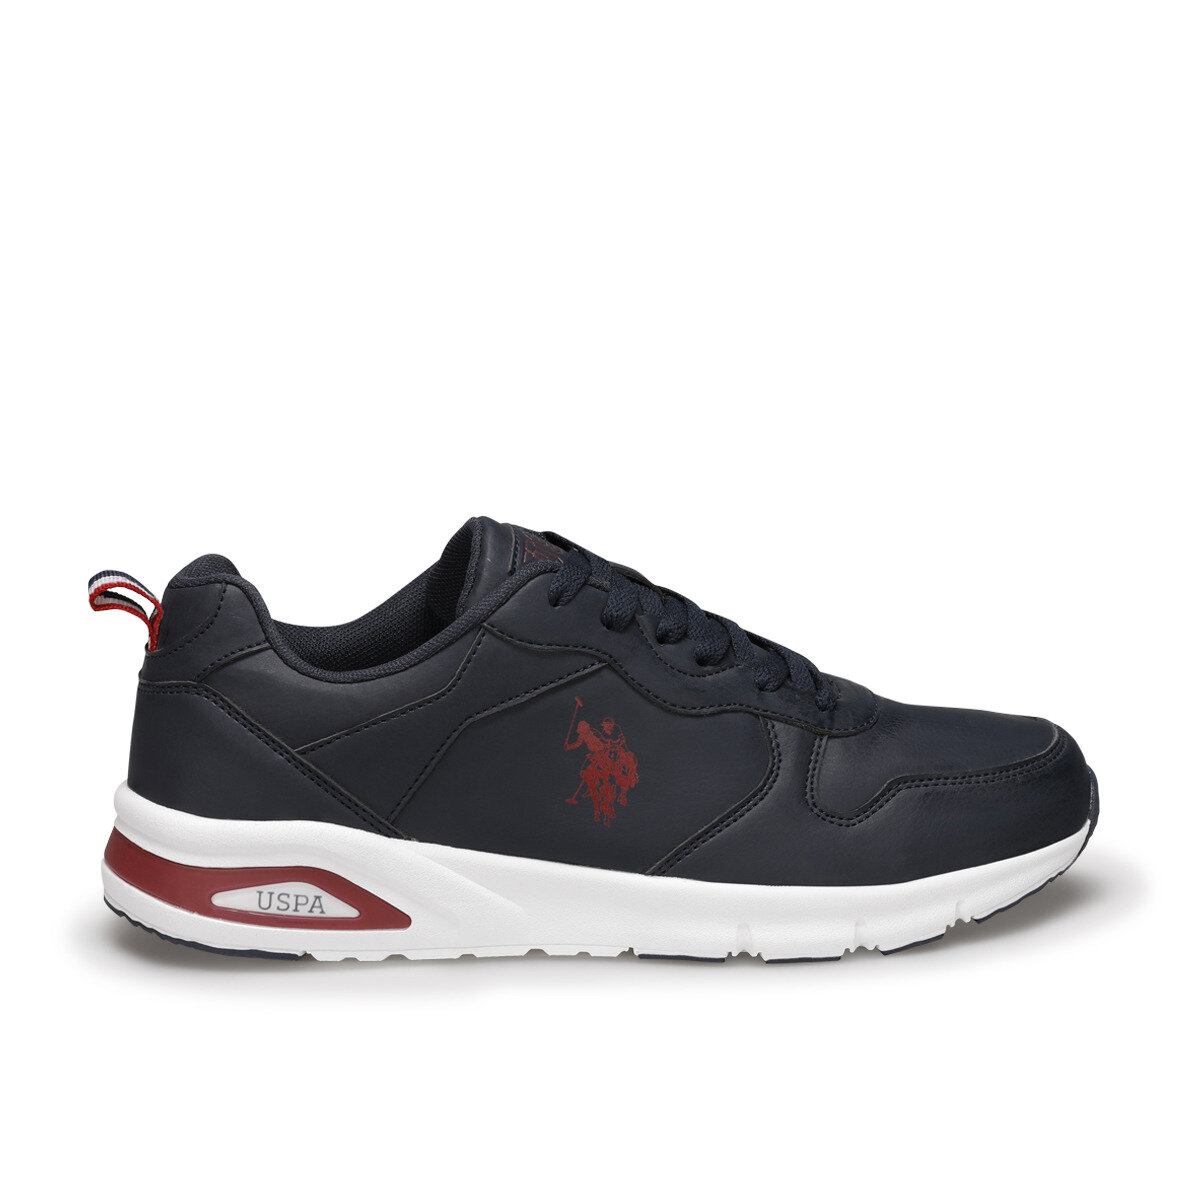 FLO VOYA Navy Blue Men 'S Sneaker Shoes U.S. POLO ASSN.